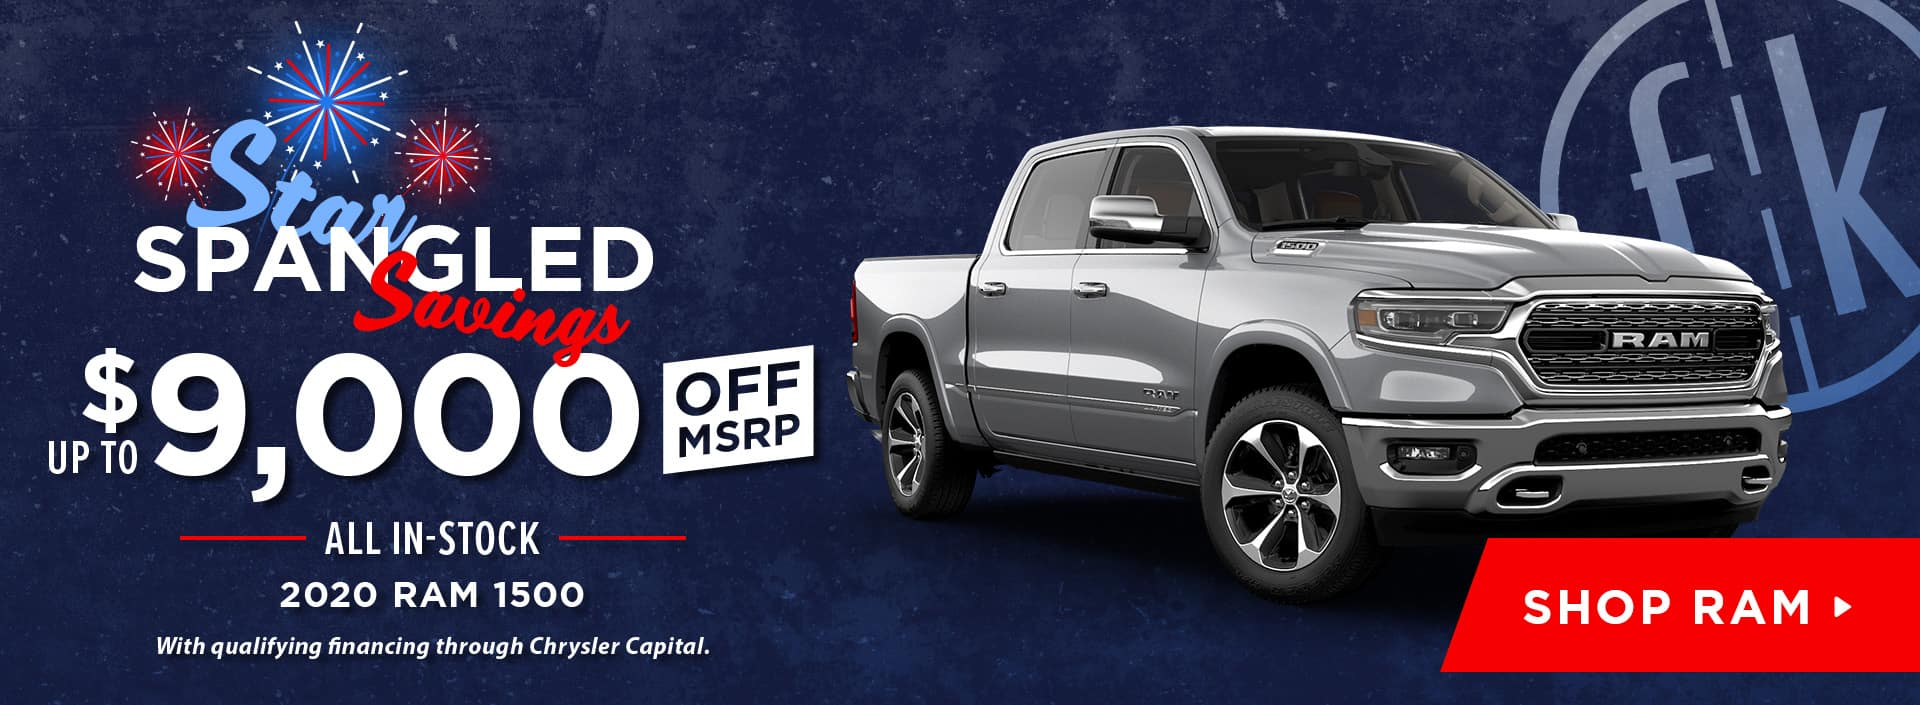 Up To $9,000 Off All In-Stock 2020 RAM 1500